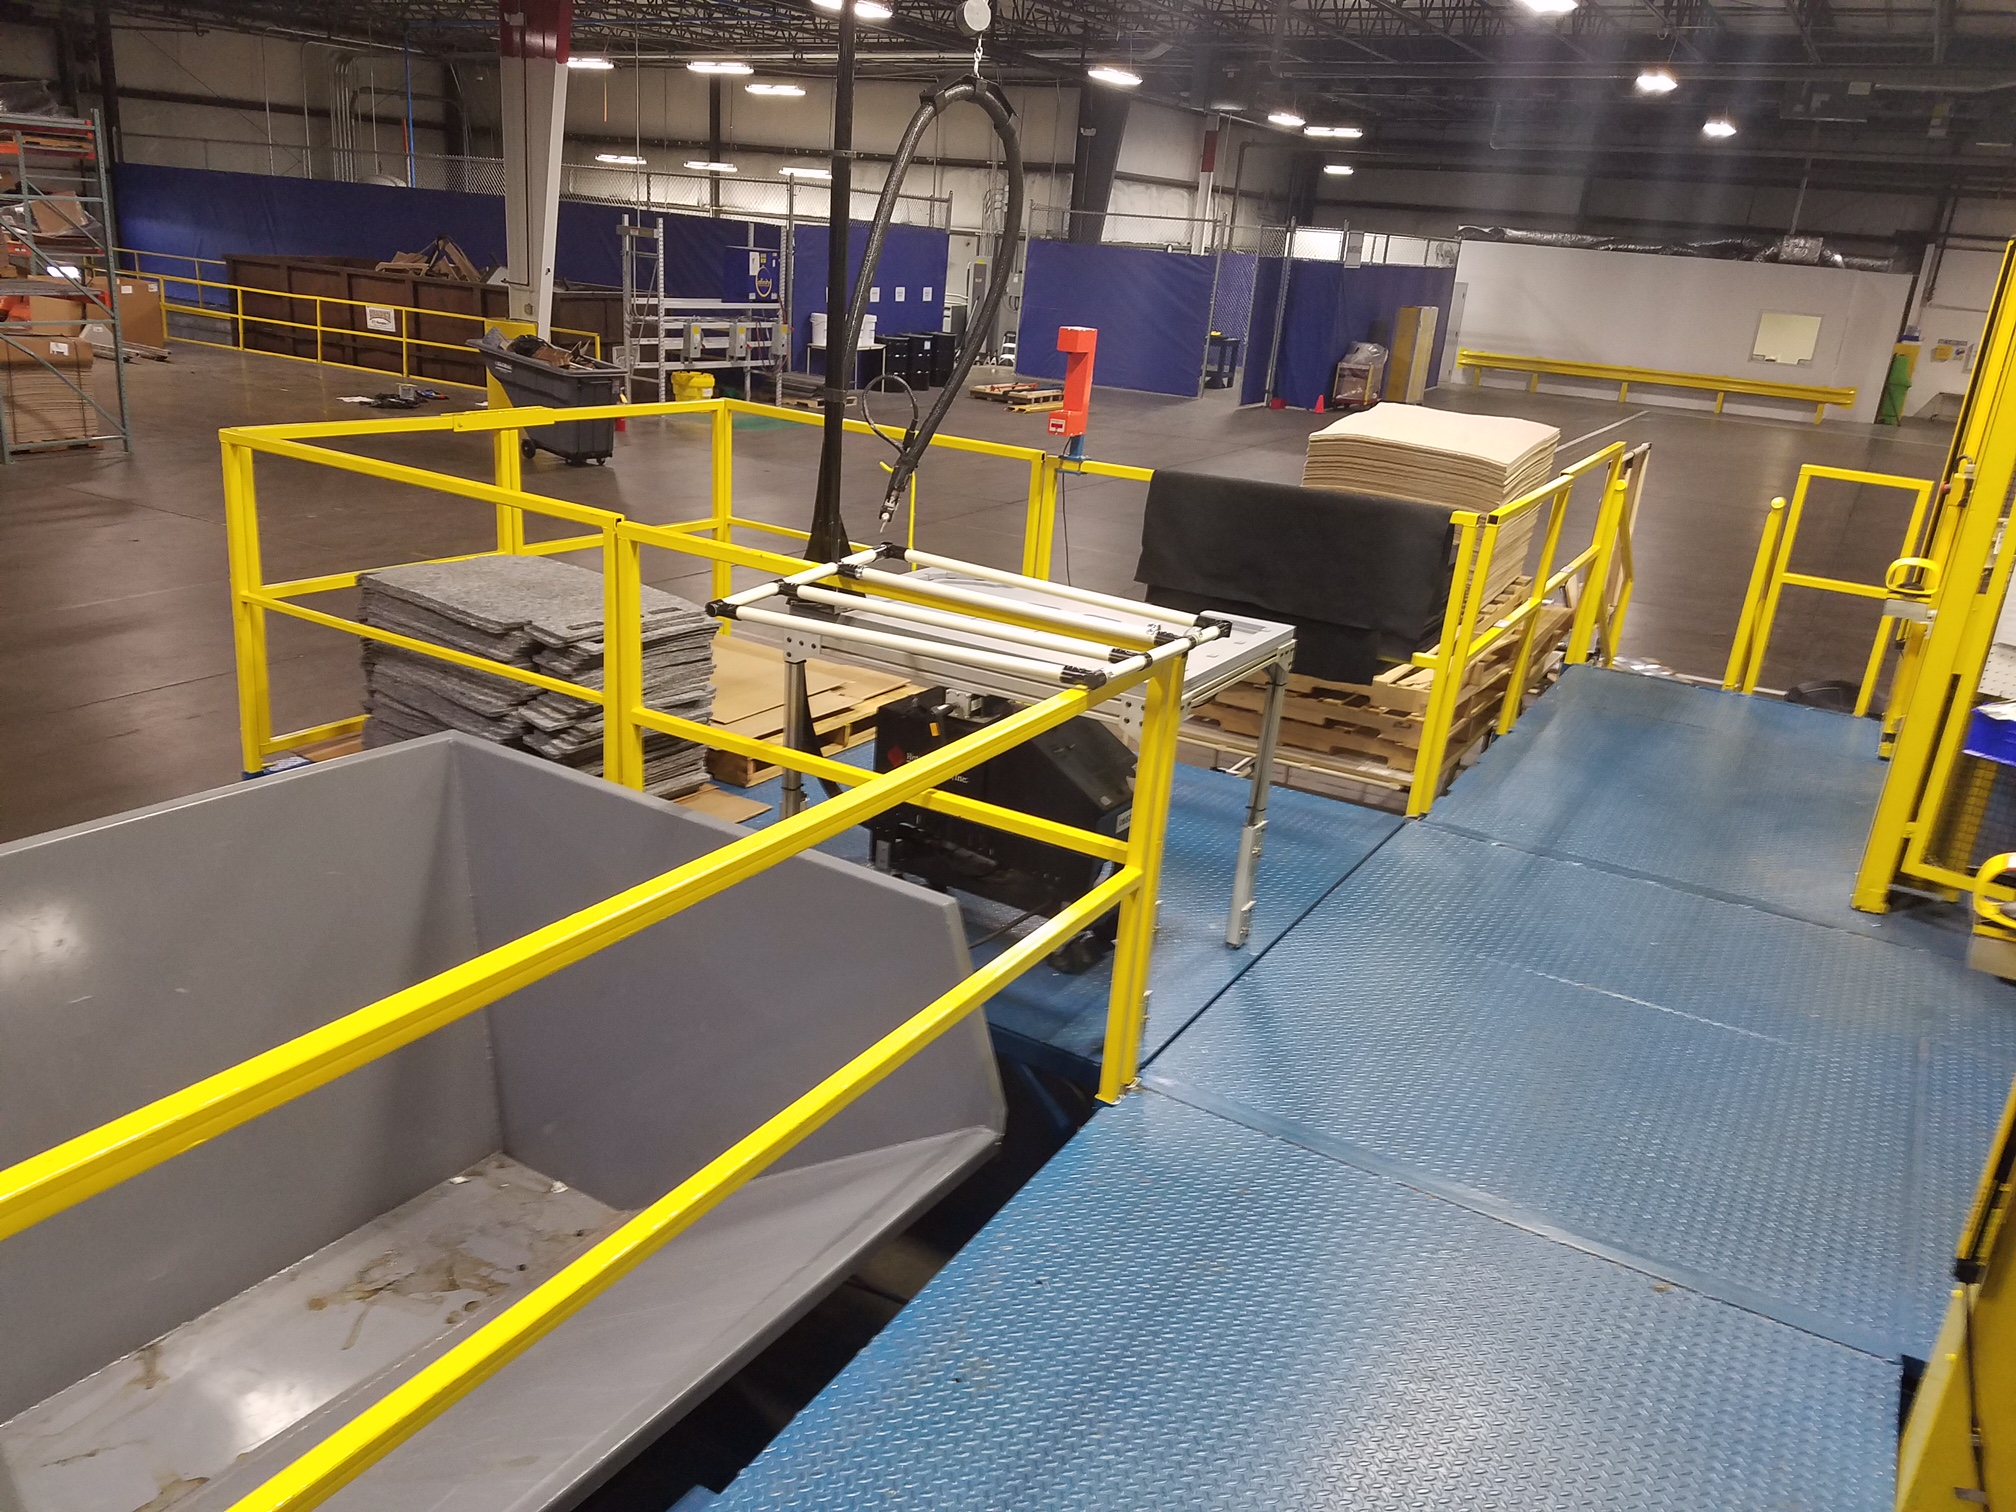 Operating mezzanine